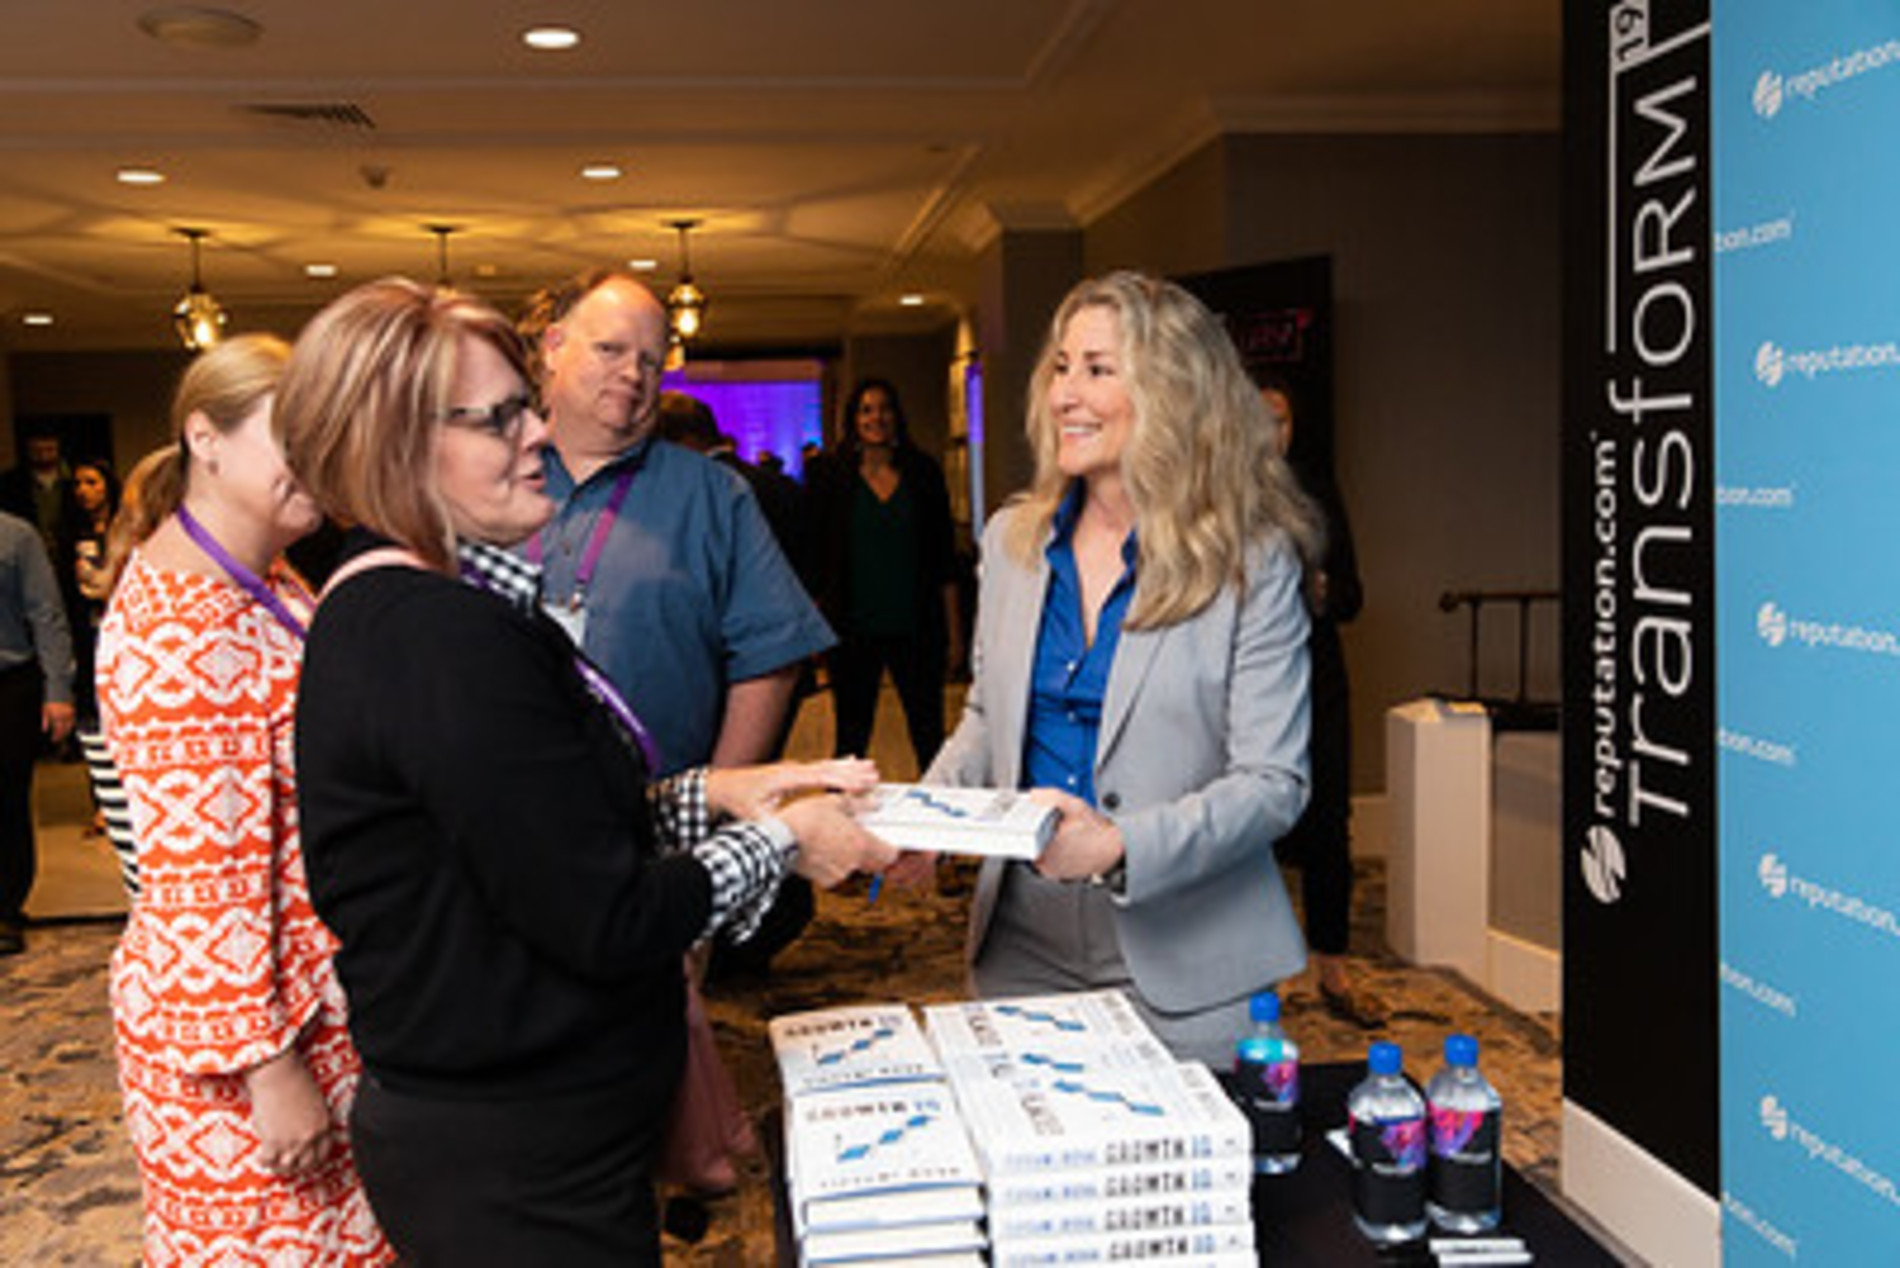 Following her keynote, Bova handed out signed copies of her best-selling book, Growth IQ.